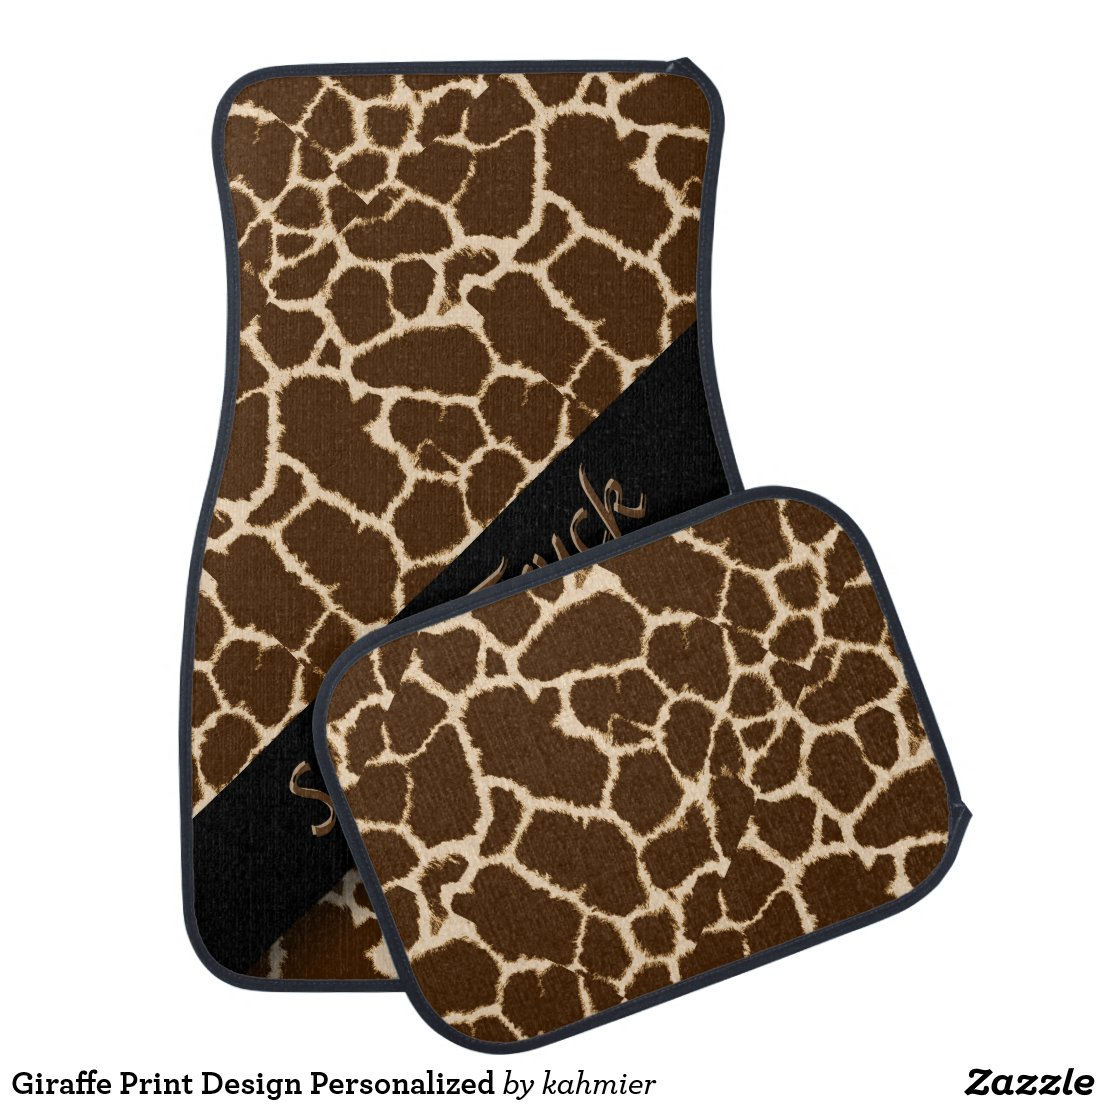 Giraffe Print Design Personalized Car Mat